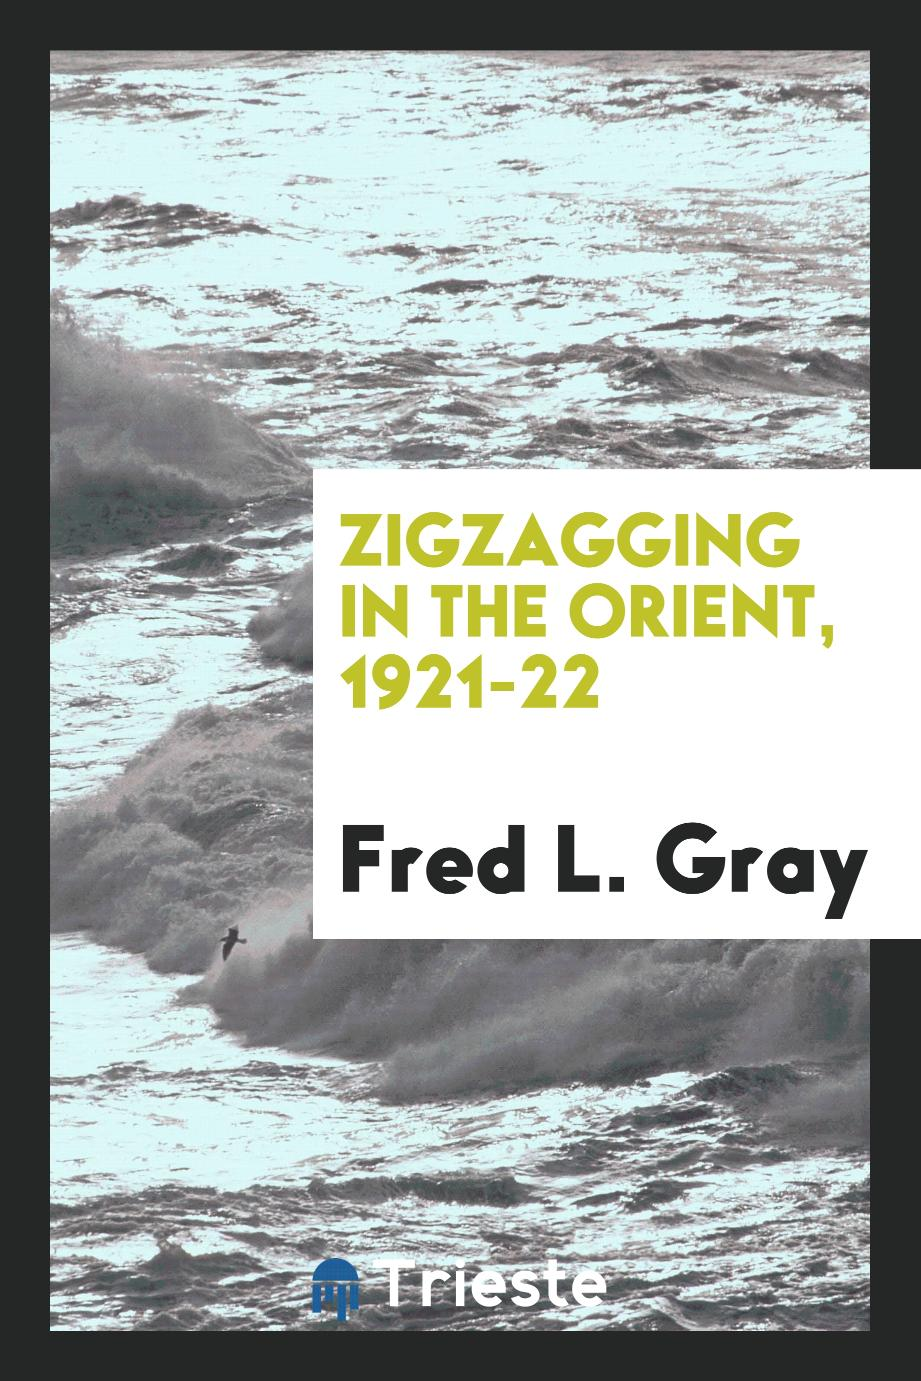 Zigzagging in the Orient, 1921-22